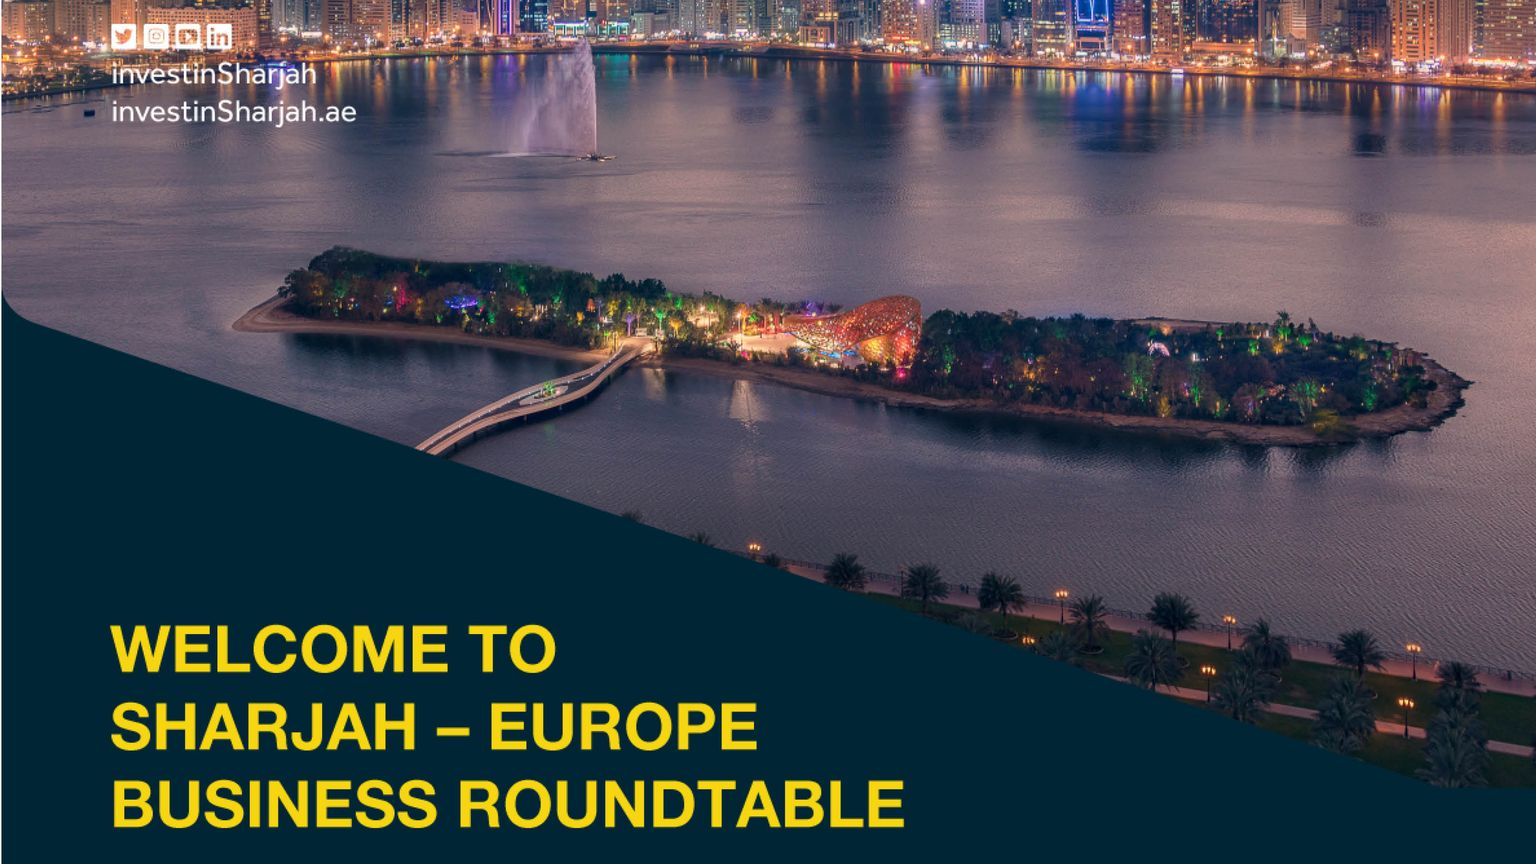 Sharjah-Europe Business Roundtable